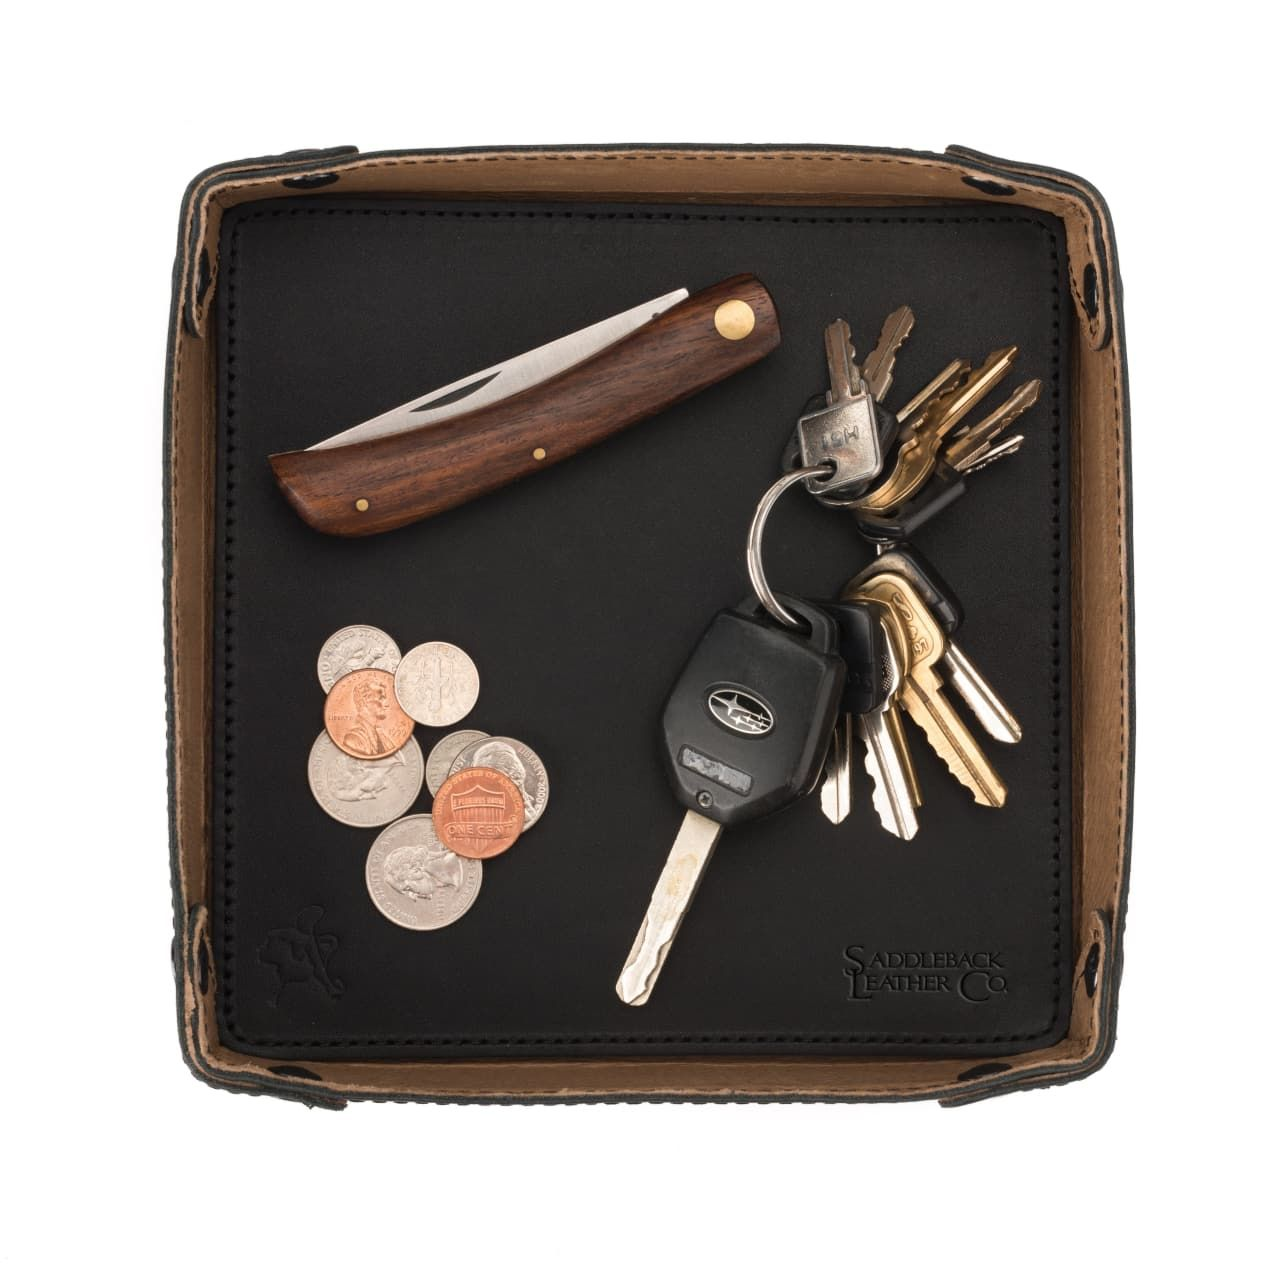 Keys, money and a pocket knife on the leather valet tray in black leather